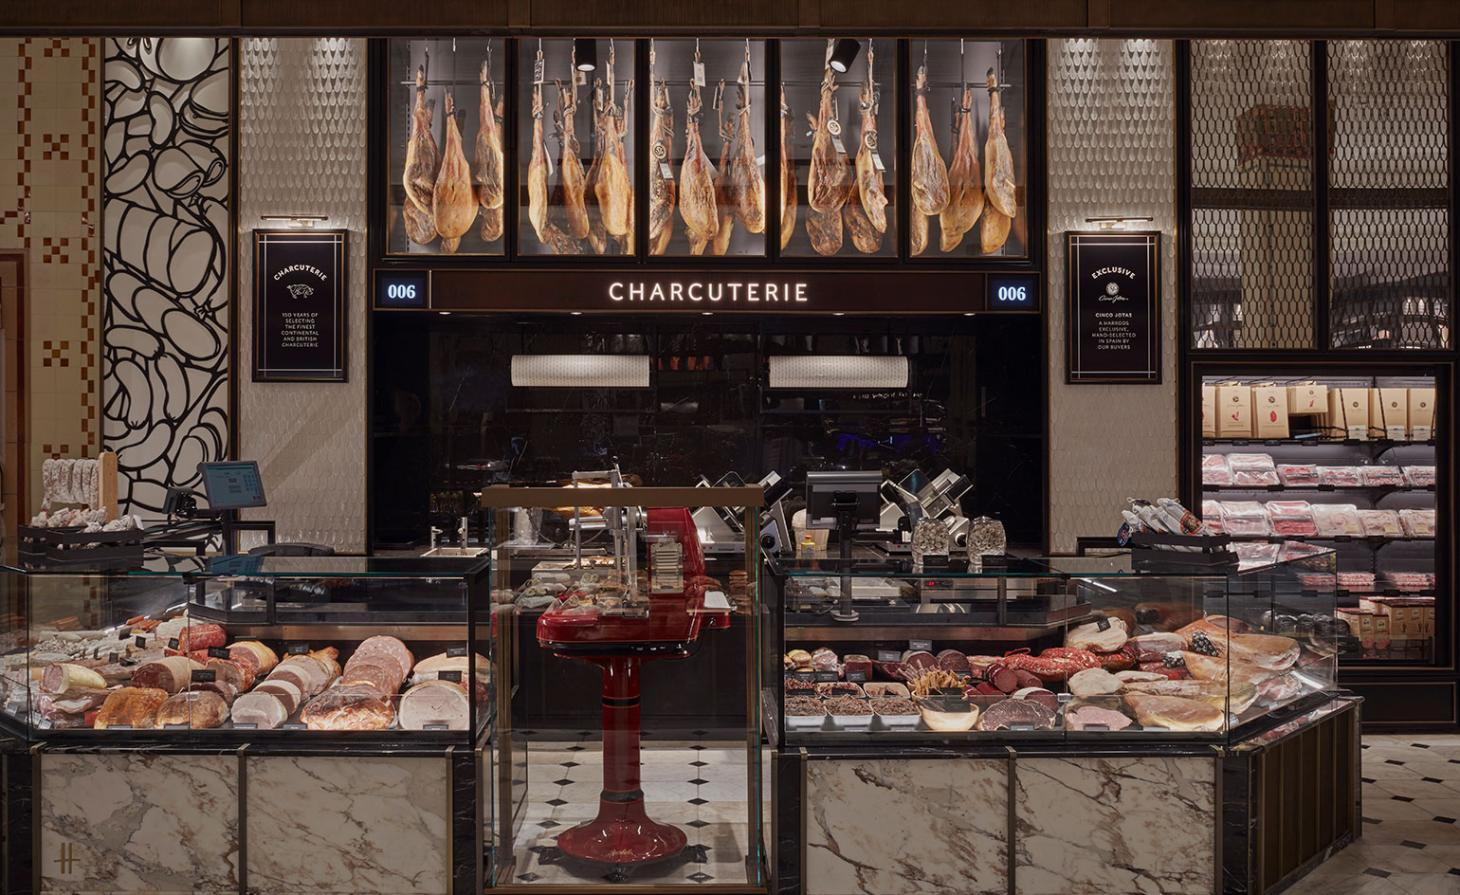 Charcuterie, at Harrods London